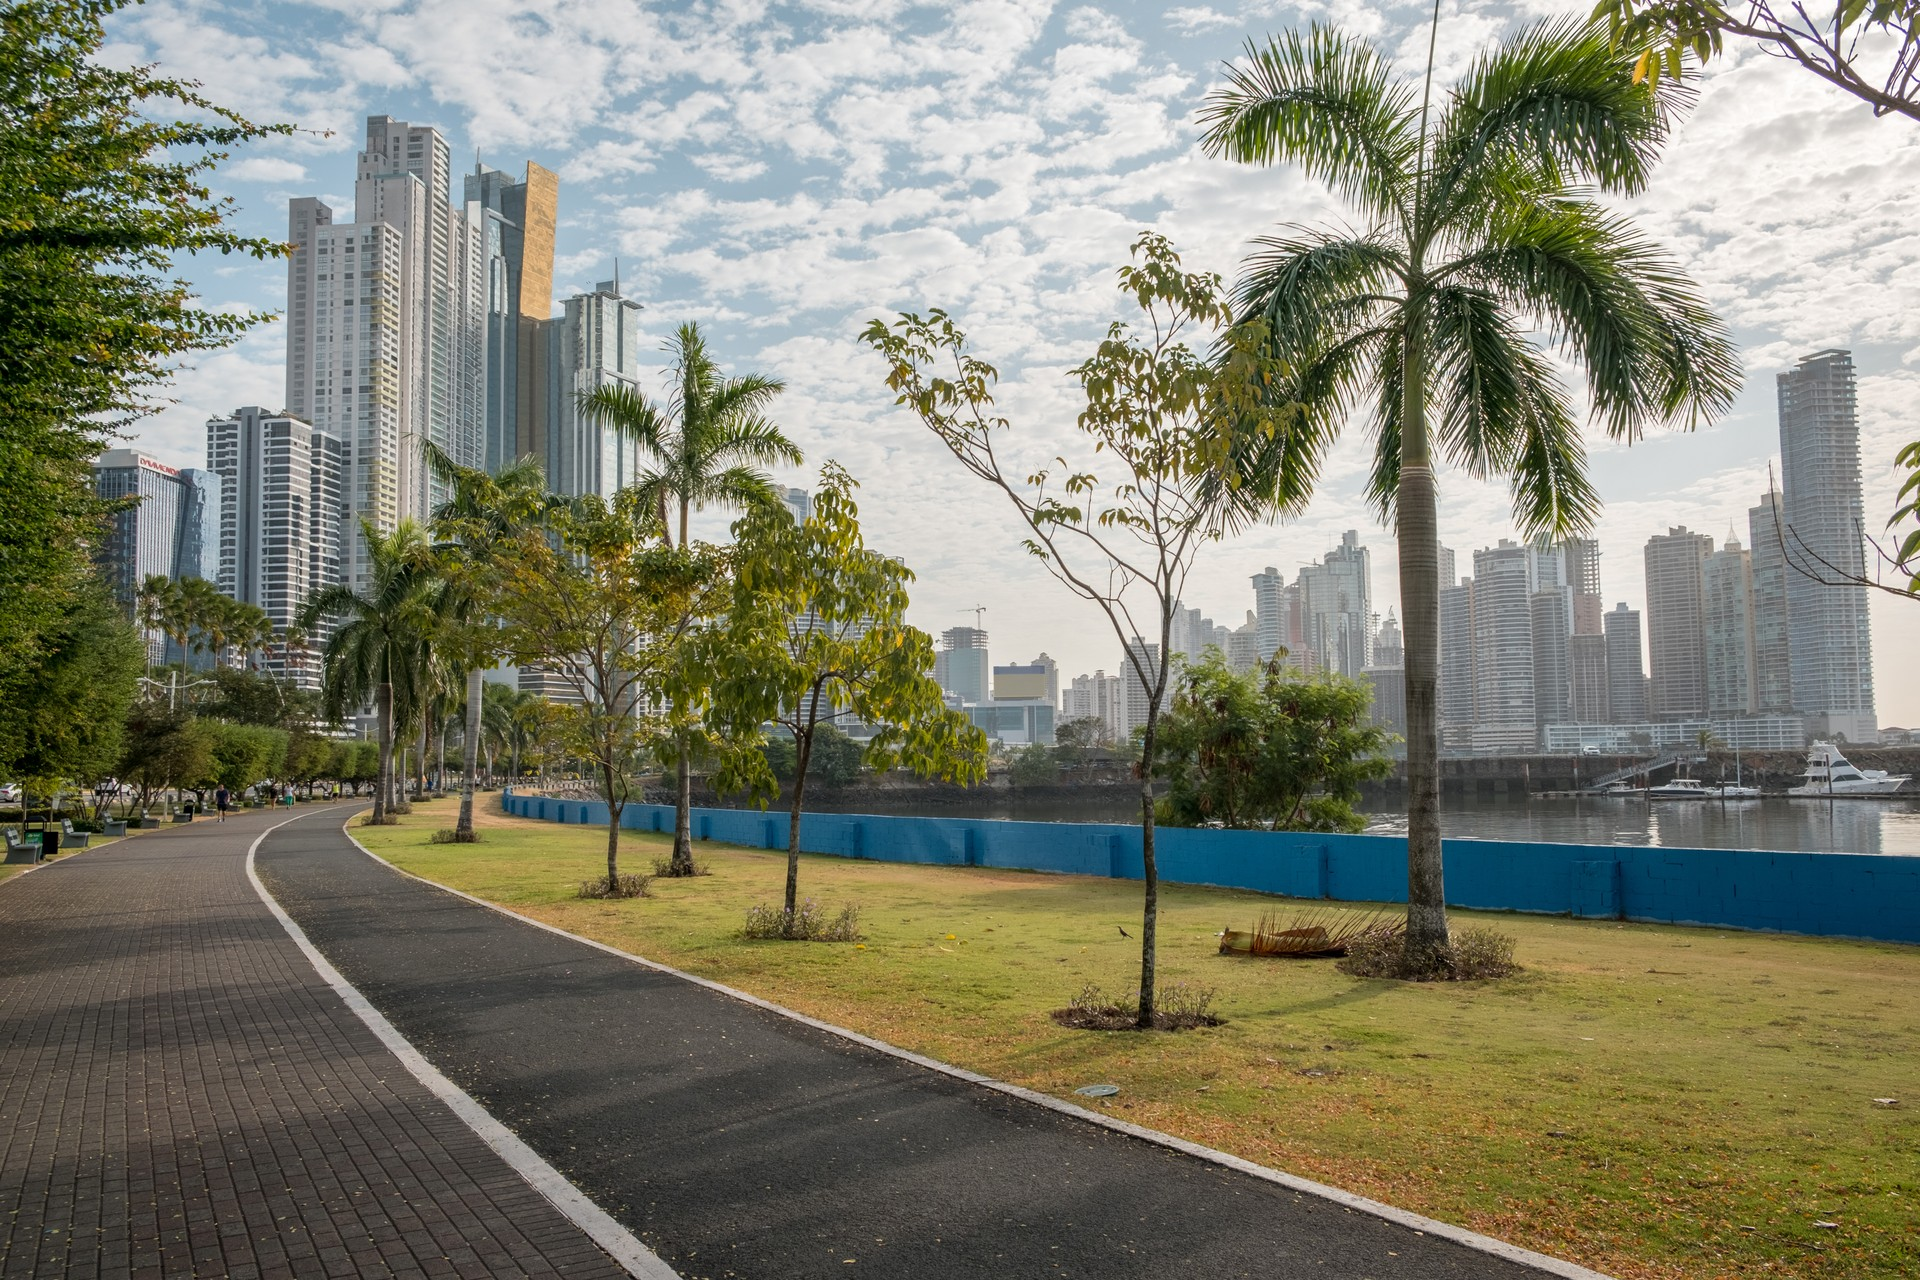 The ocean front promenade in Panama is great for cycling